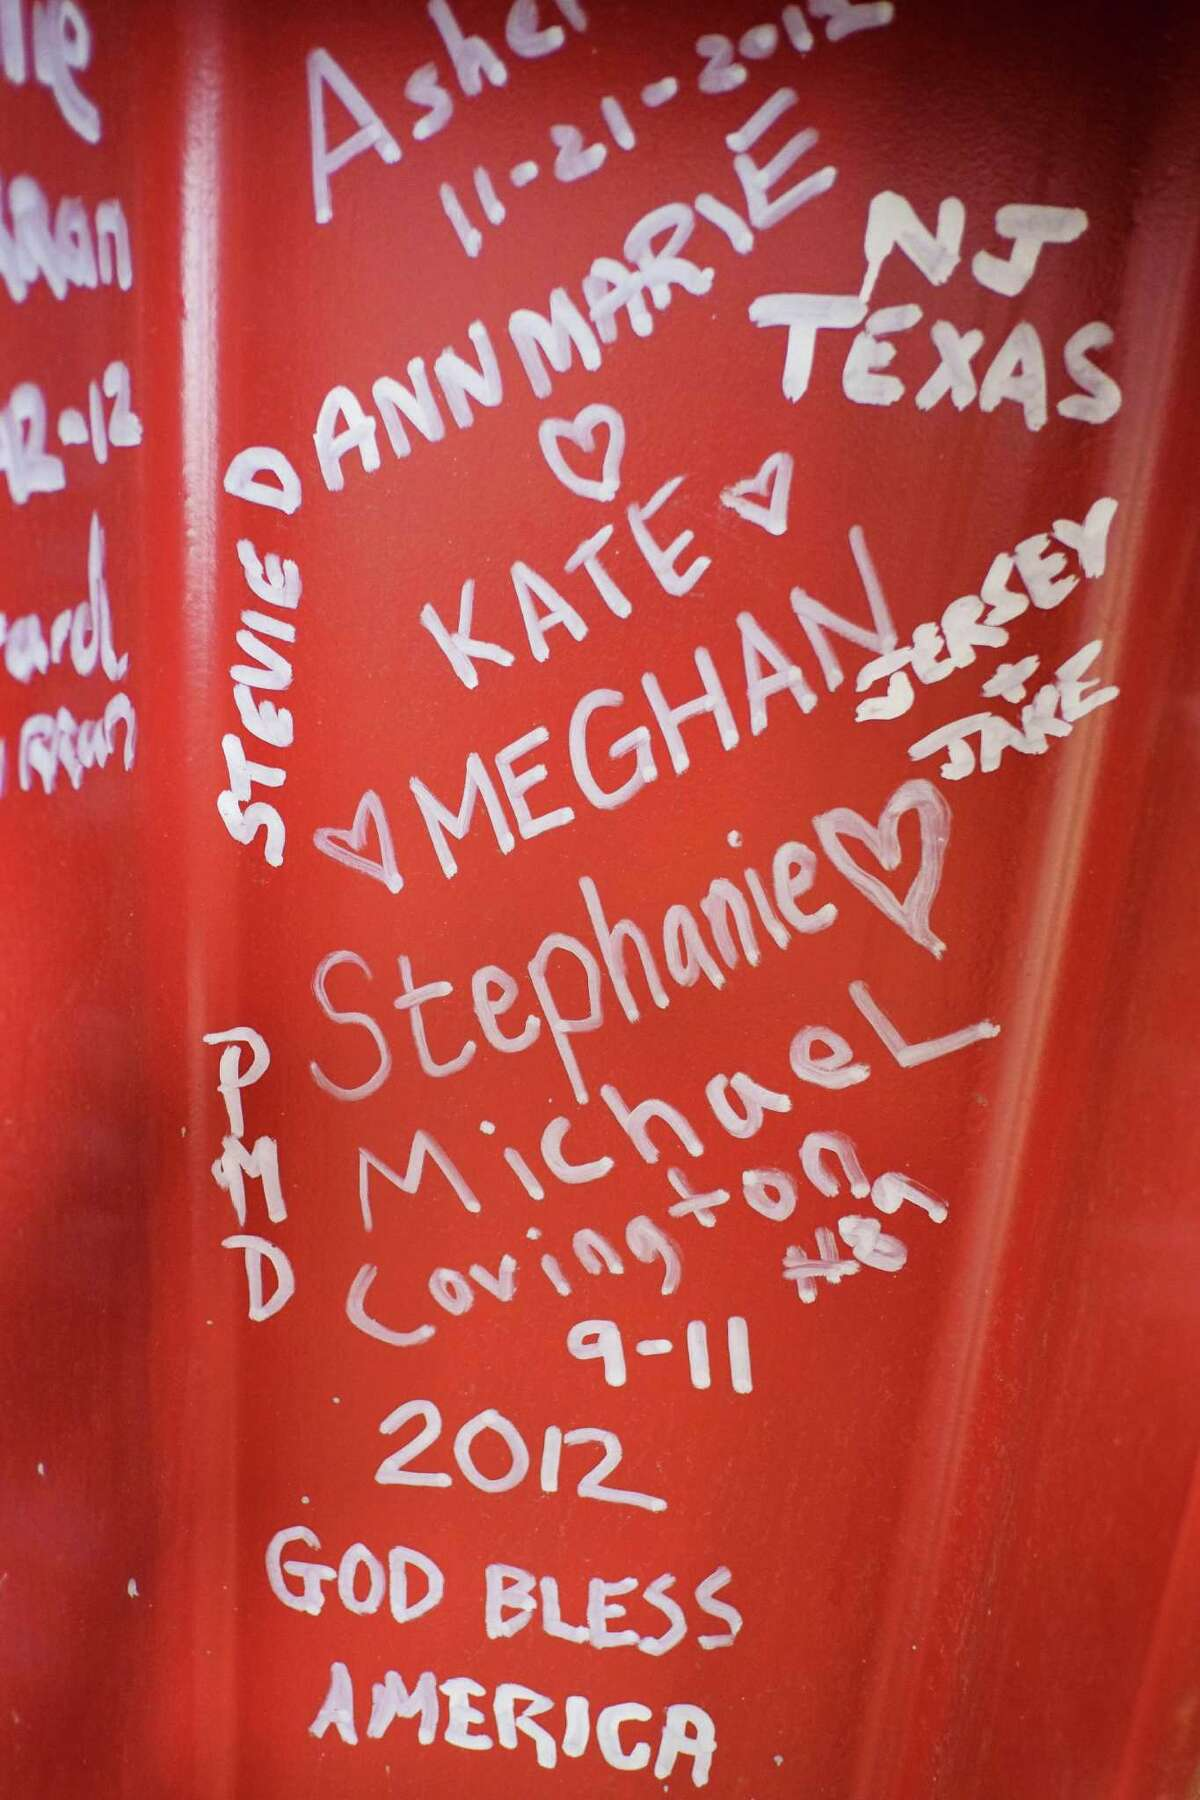 This Jan. 15, 2013 photo shows graffiti left by visitors to the World Trade Center on a steel column on the 104th floor of One World Trade Center in New York. Construction workers finishing New York's tallest building at the World Trade Center are leaving their personal marks on the concrete and steel in the form of graffiti.